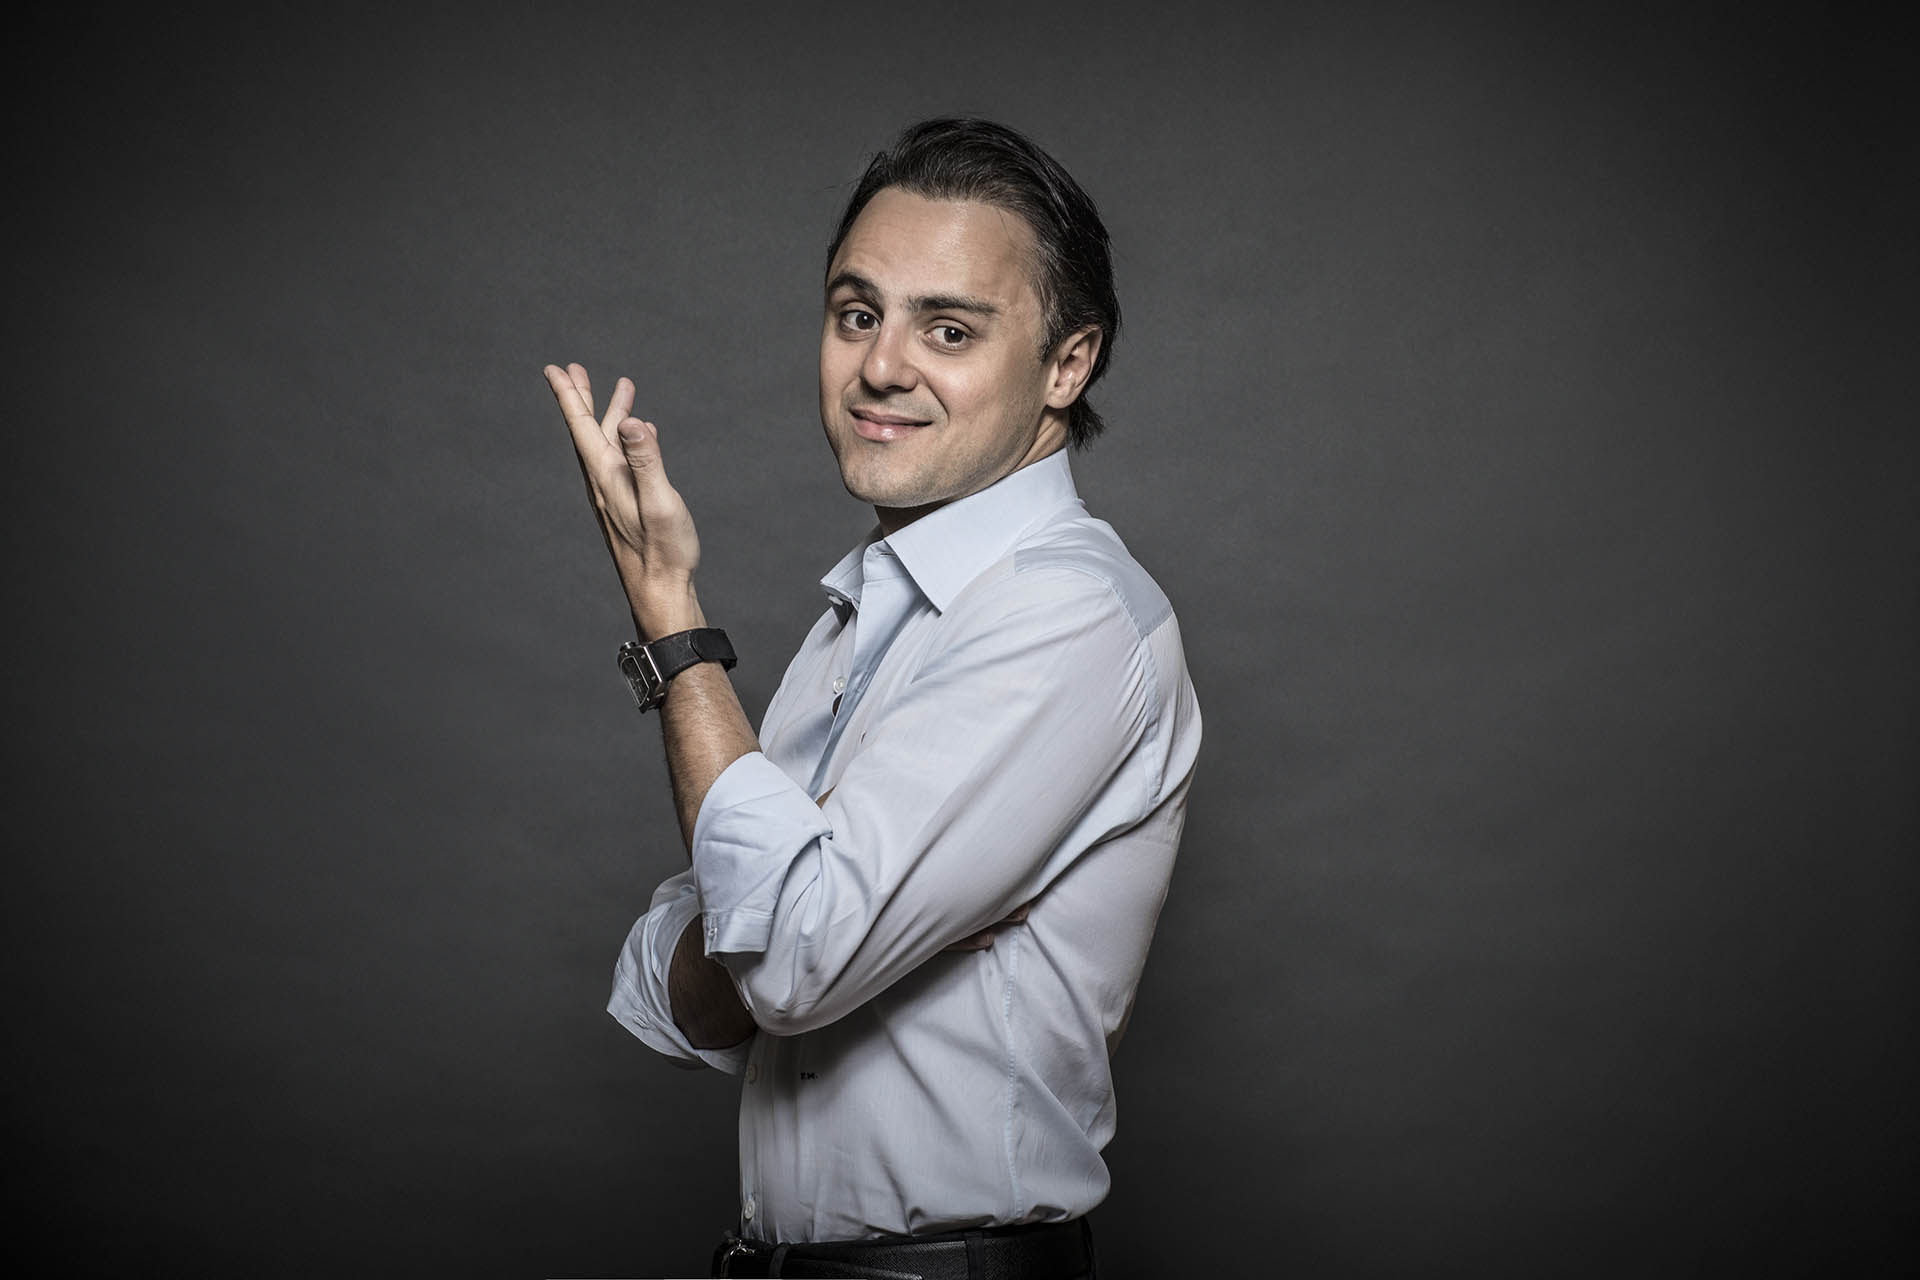 Felipe Massa (Richard Mille)